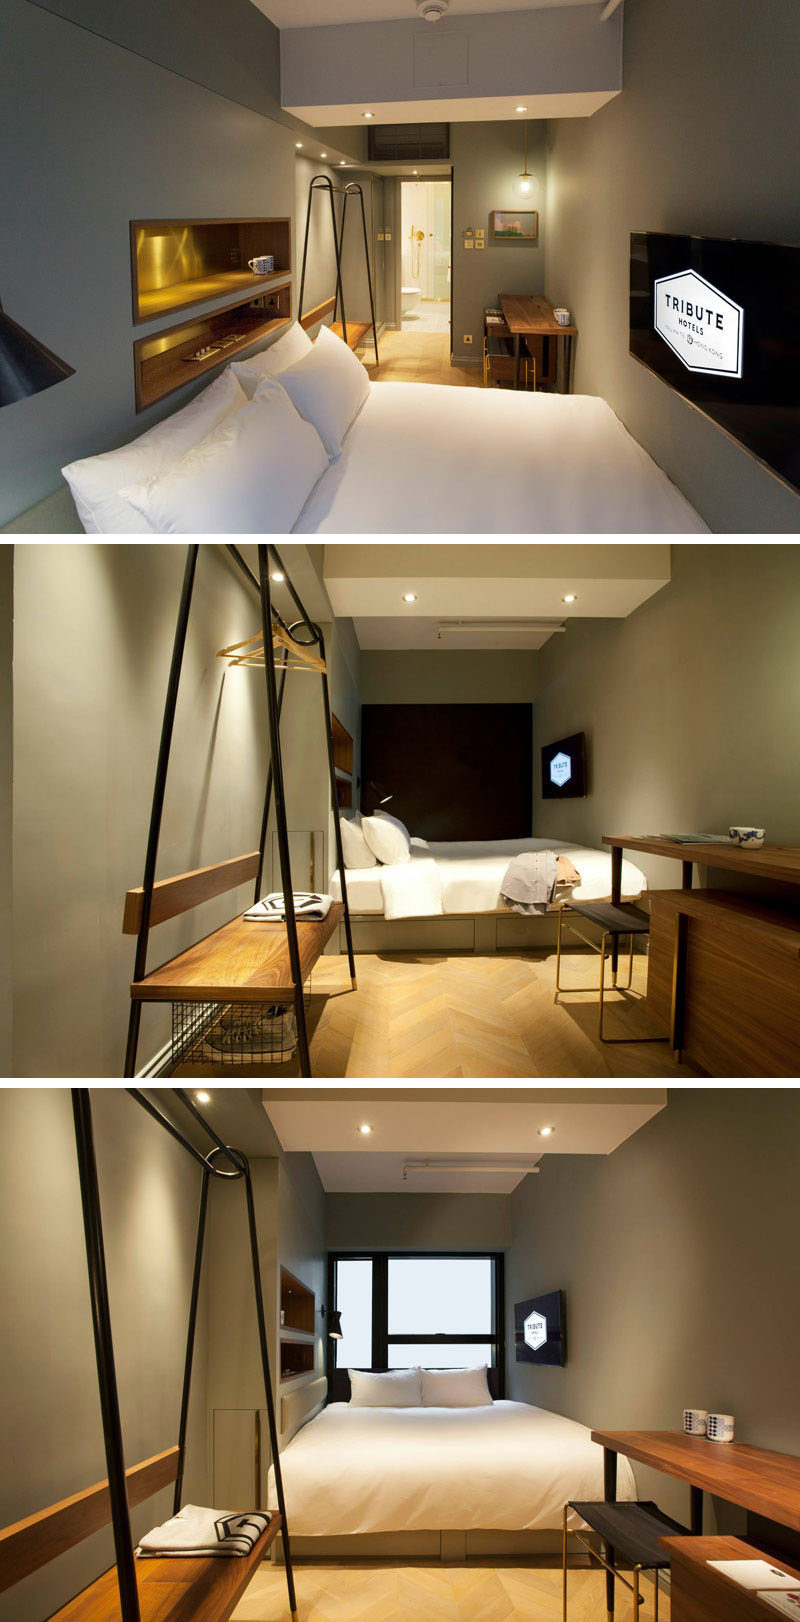 8 small hotel rooms that maximize their tiny space contemporist - Interior design small spaces ideas gallery ...